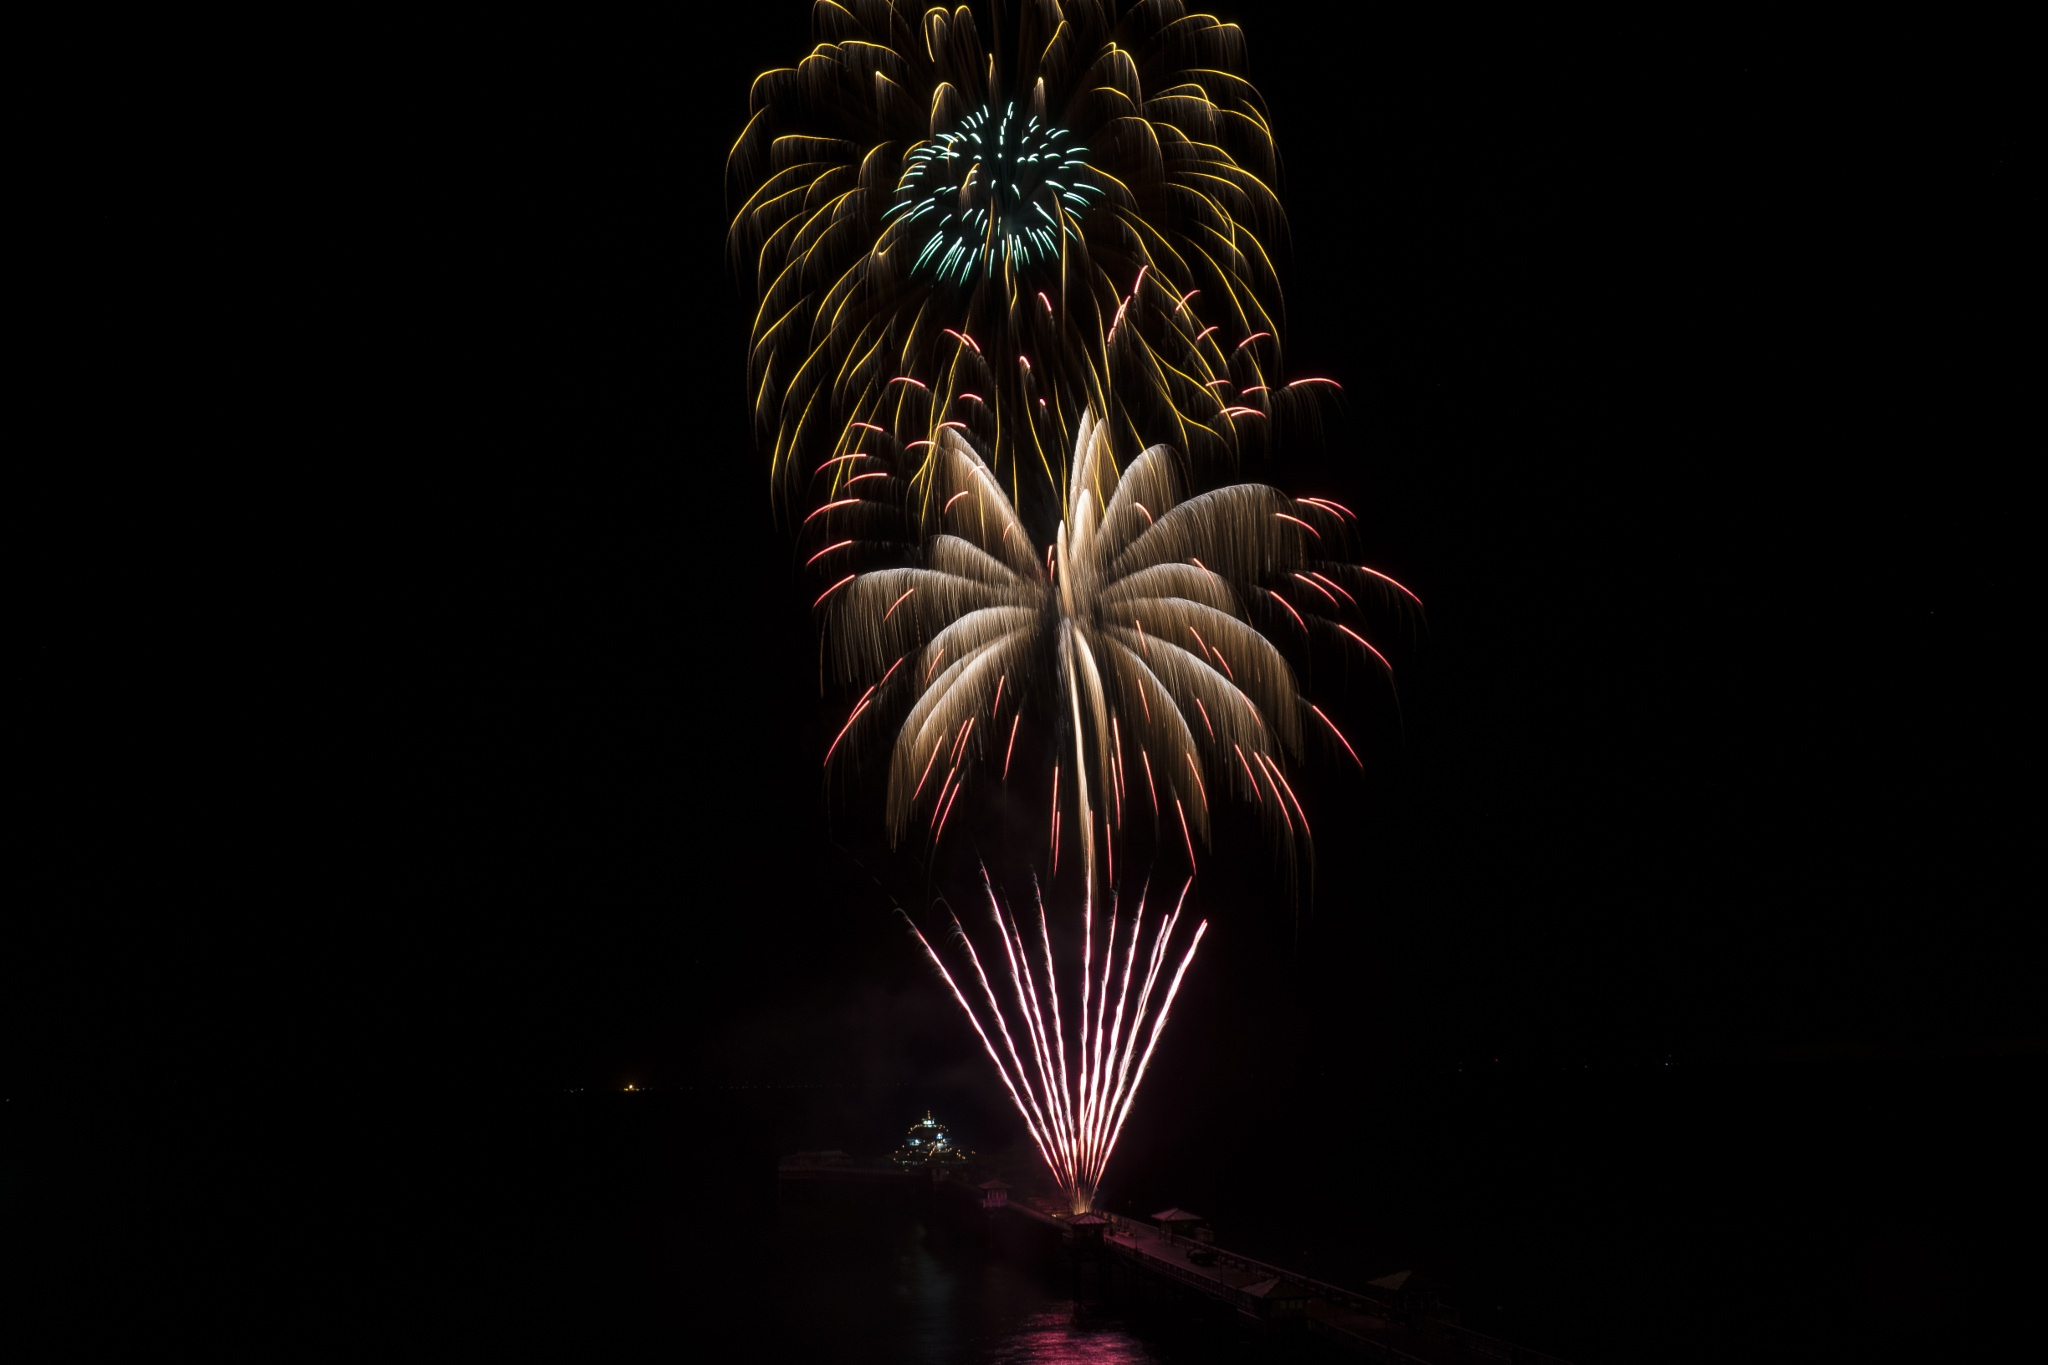 Fireworks 3 by Martin Beecroft